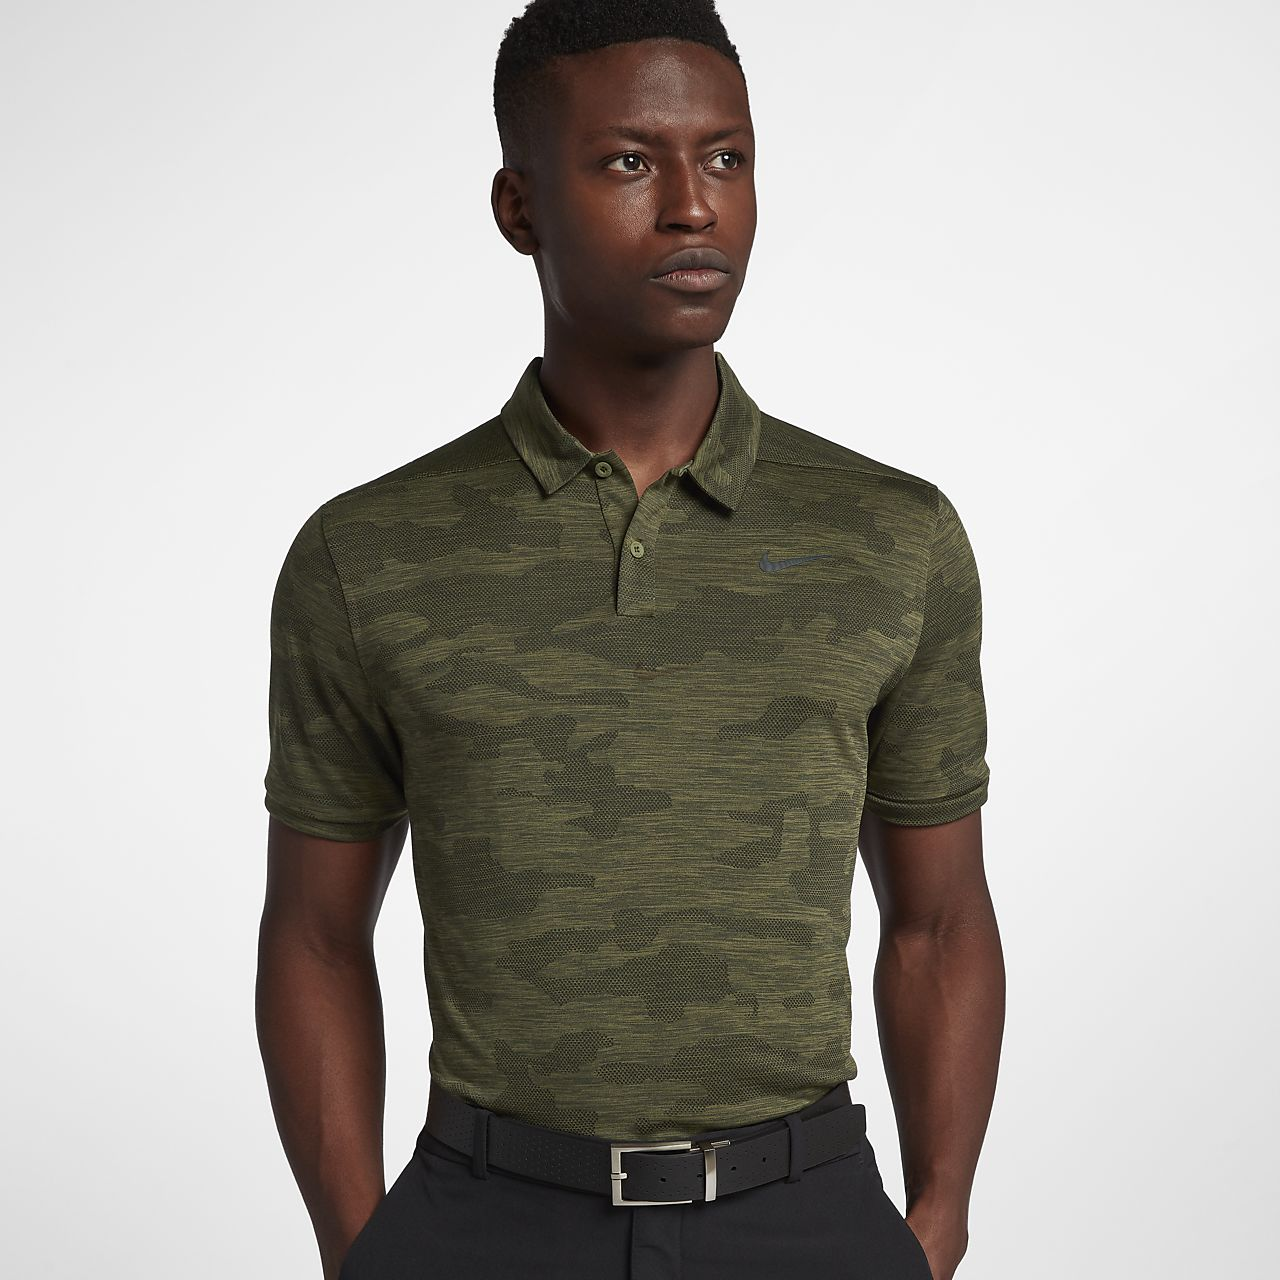 Nike Zonal Cooling Mens Camo Golf Polo Nike